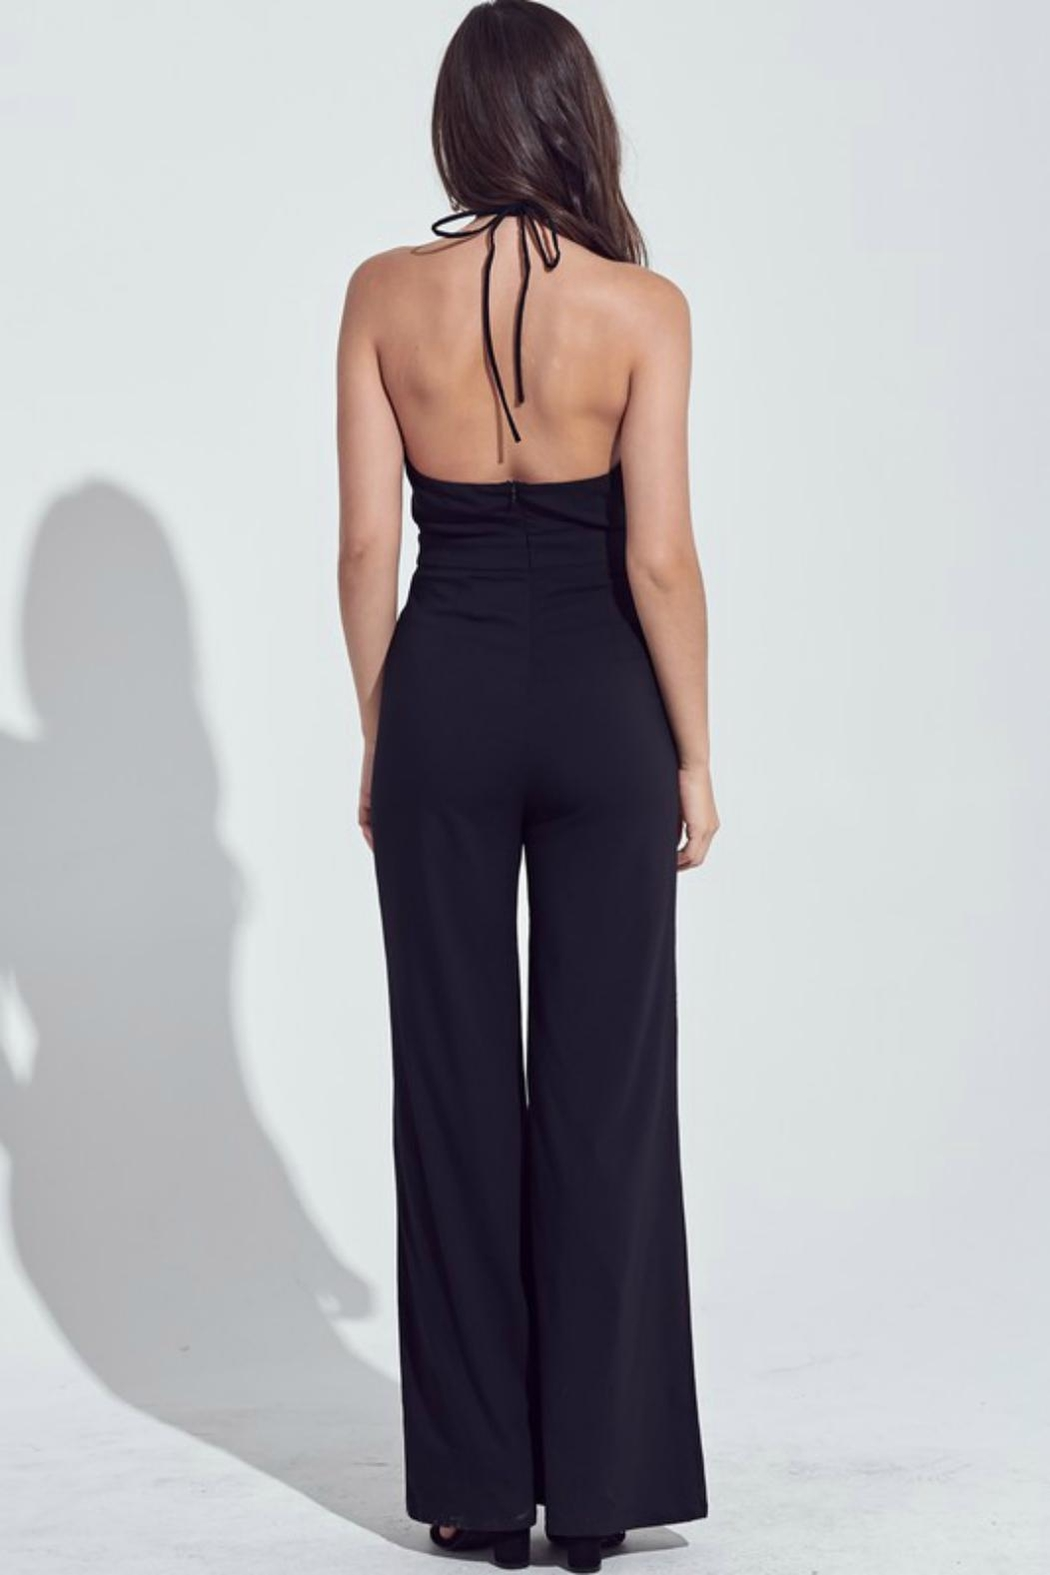 Pretty Little Things Peekaboo Halter Jumpsuit - Front Full Image